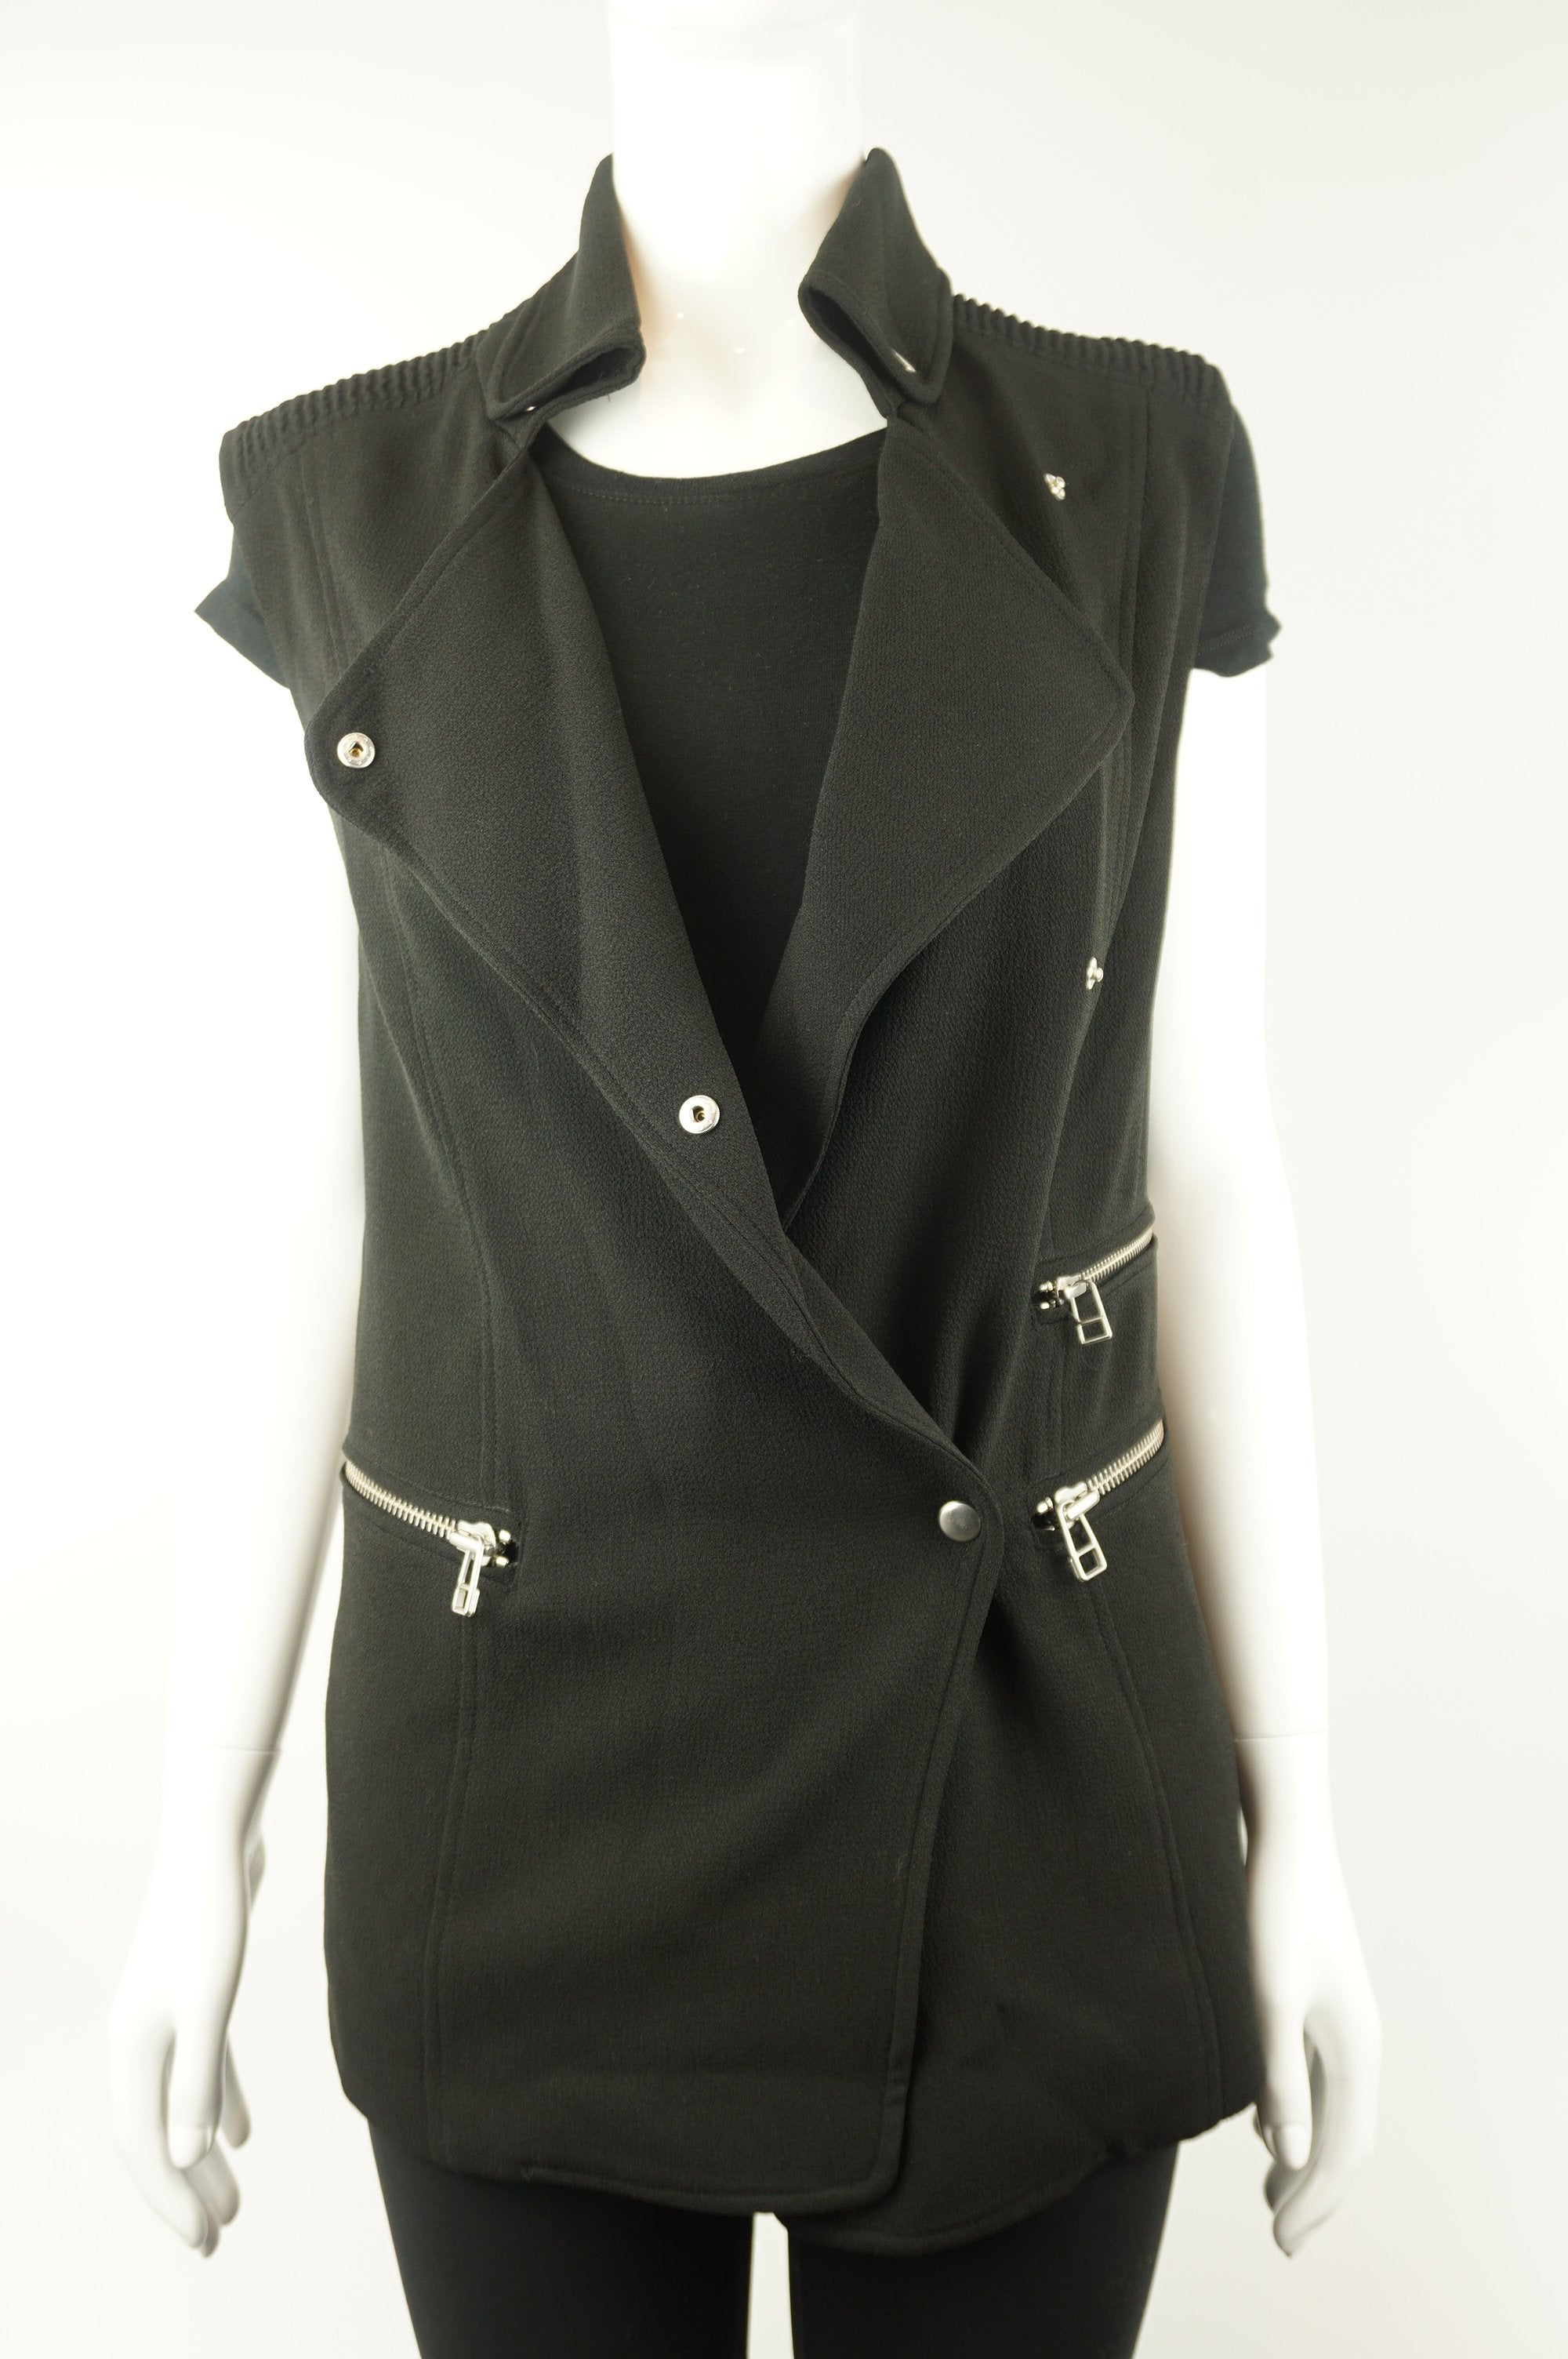 Wilfred Black Vest, Simple cute vest., Black, 68% acetate, 32% polyester, women's Jackets & Coats, women's Black Jackets & Coats, Wilfred women's Jackets & Coats, women's black vest, wilfred black vest, wilfred women's sleeveless vest jacket, wilfred women's sleeveless duster blazer vest jacket